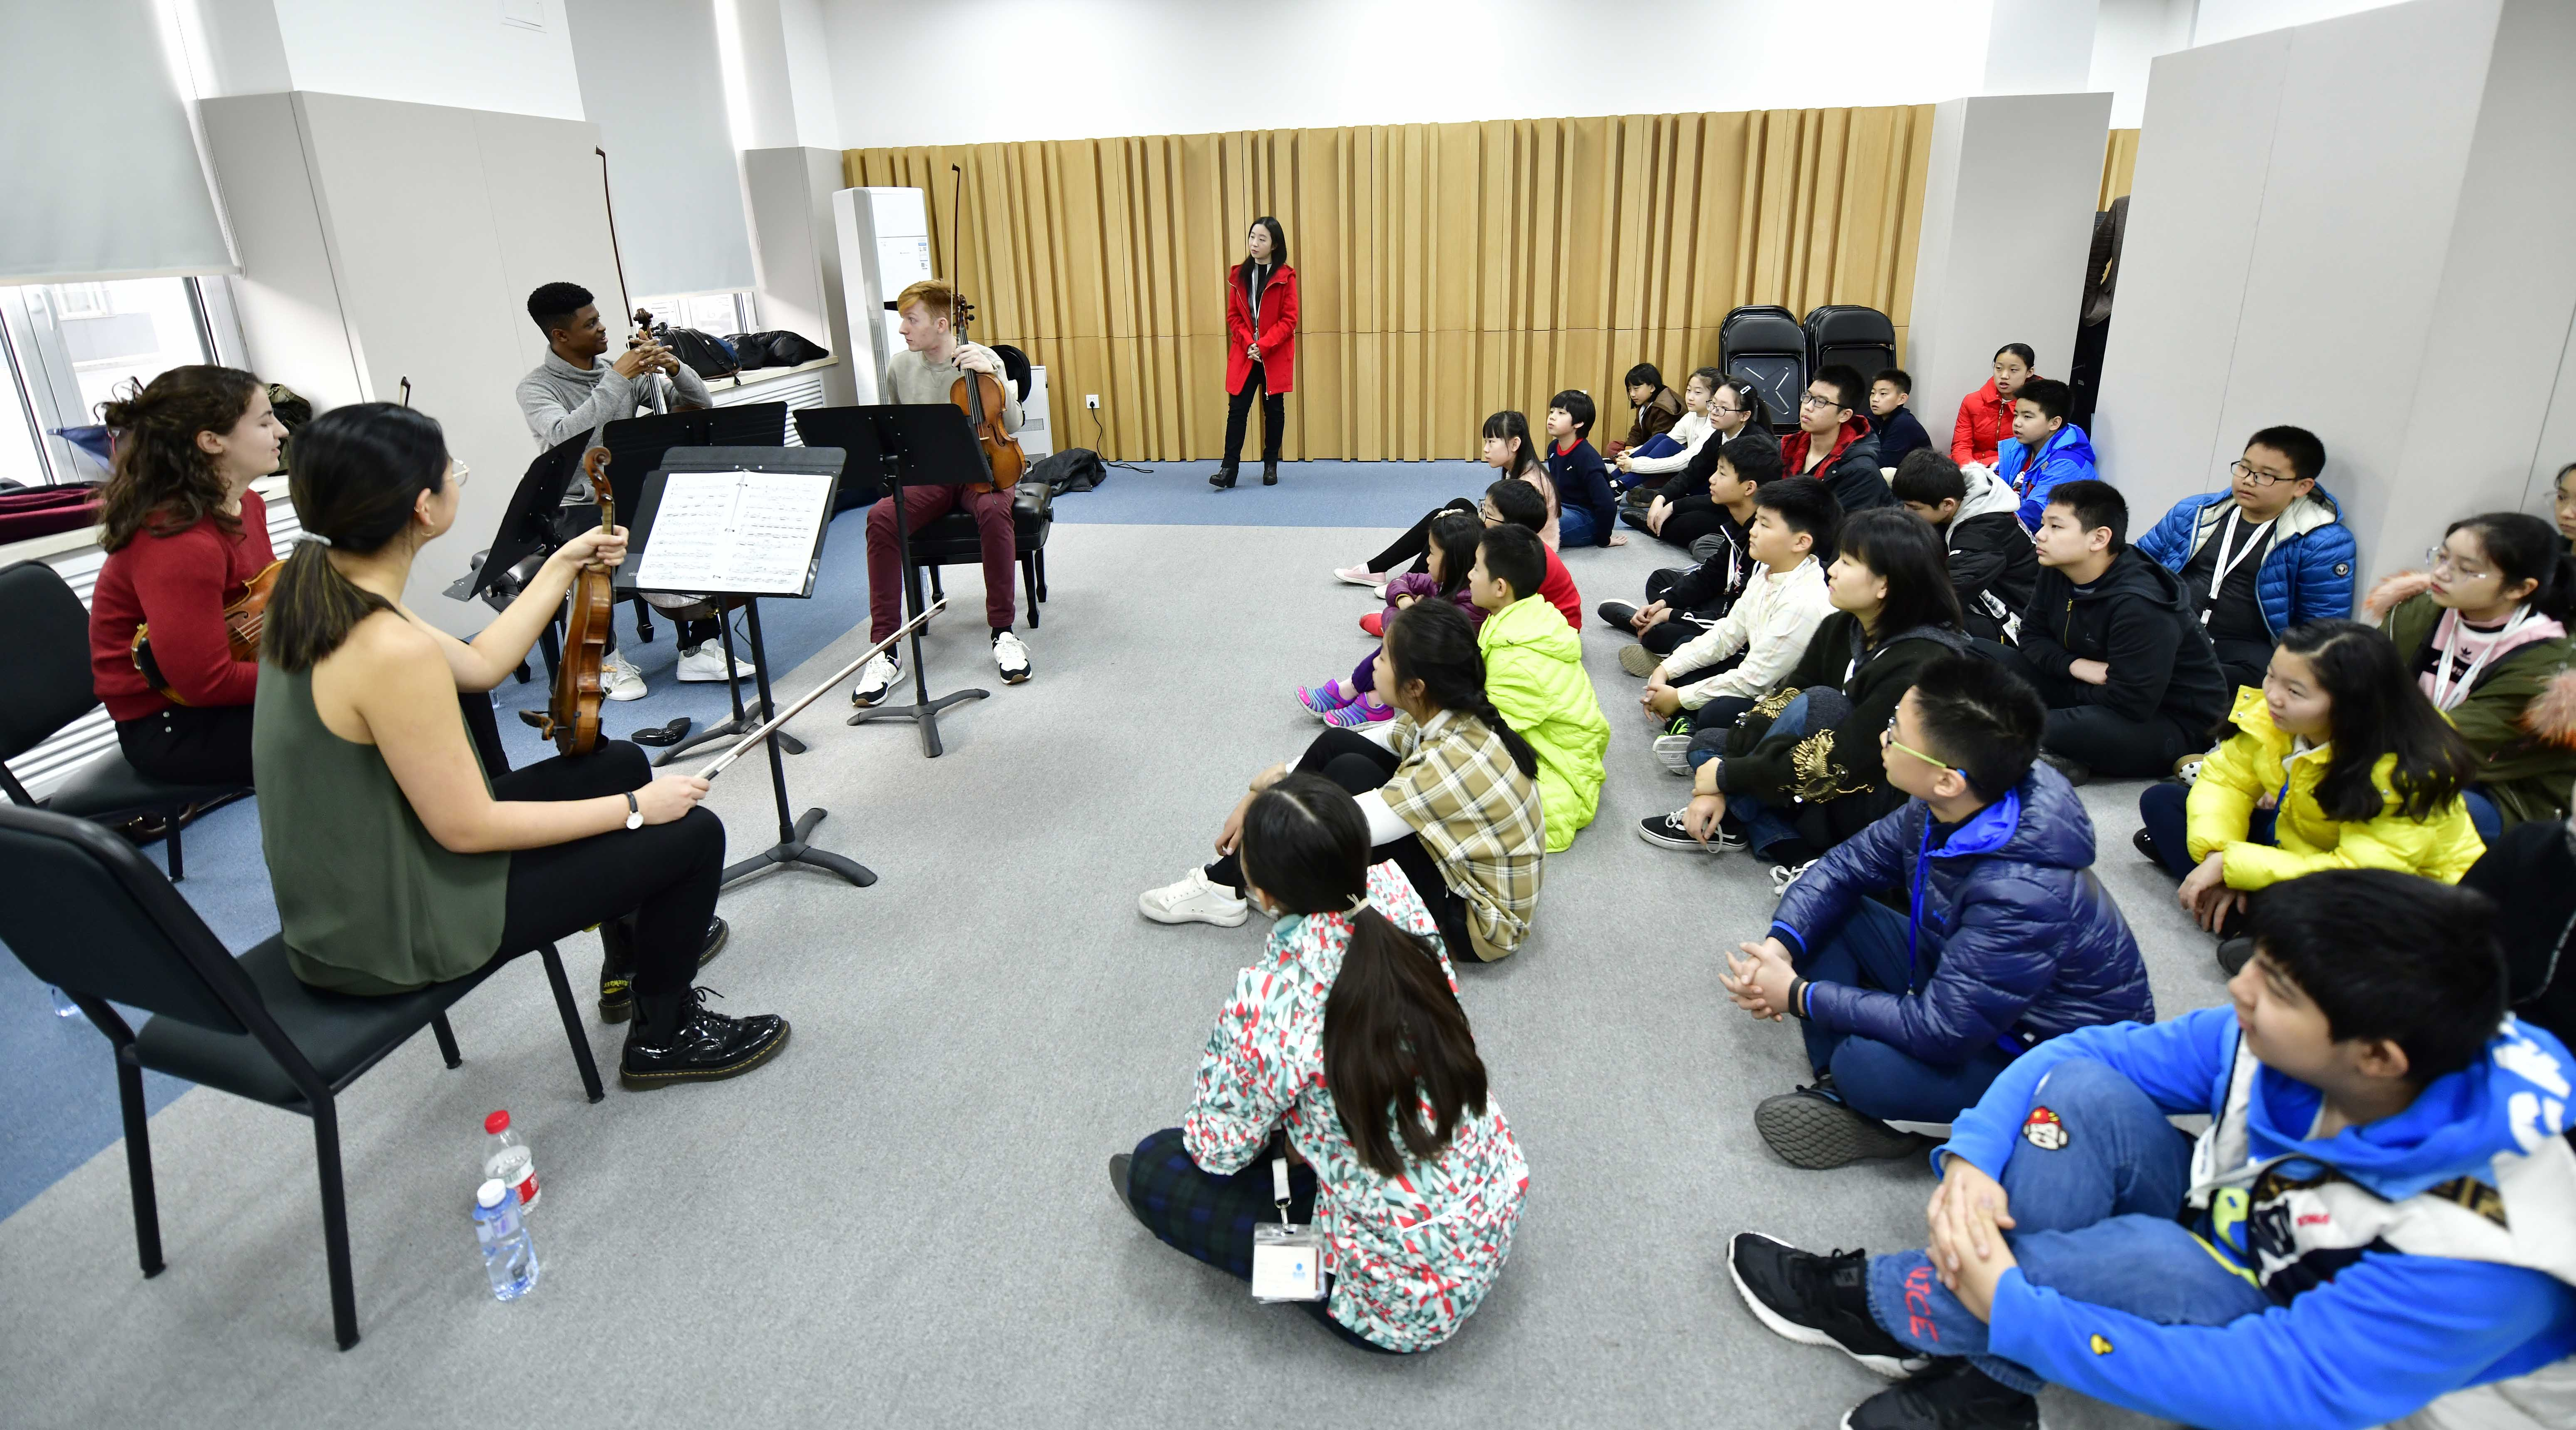 Meeting the Tianjin Juilliard Pre-College students! Photo credit: Duan Chao